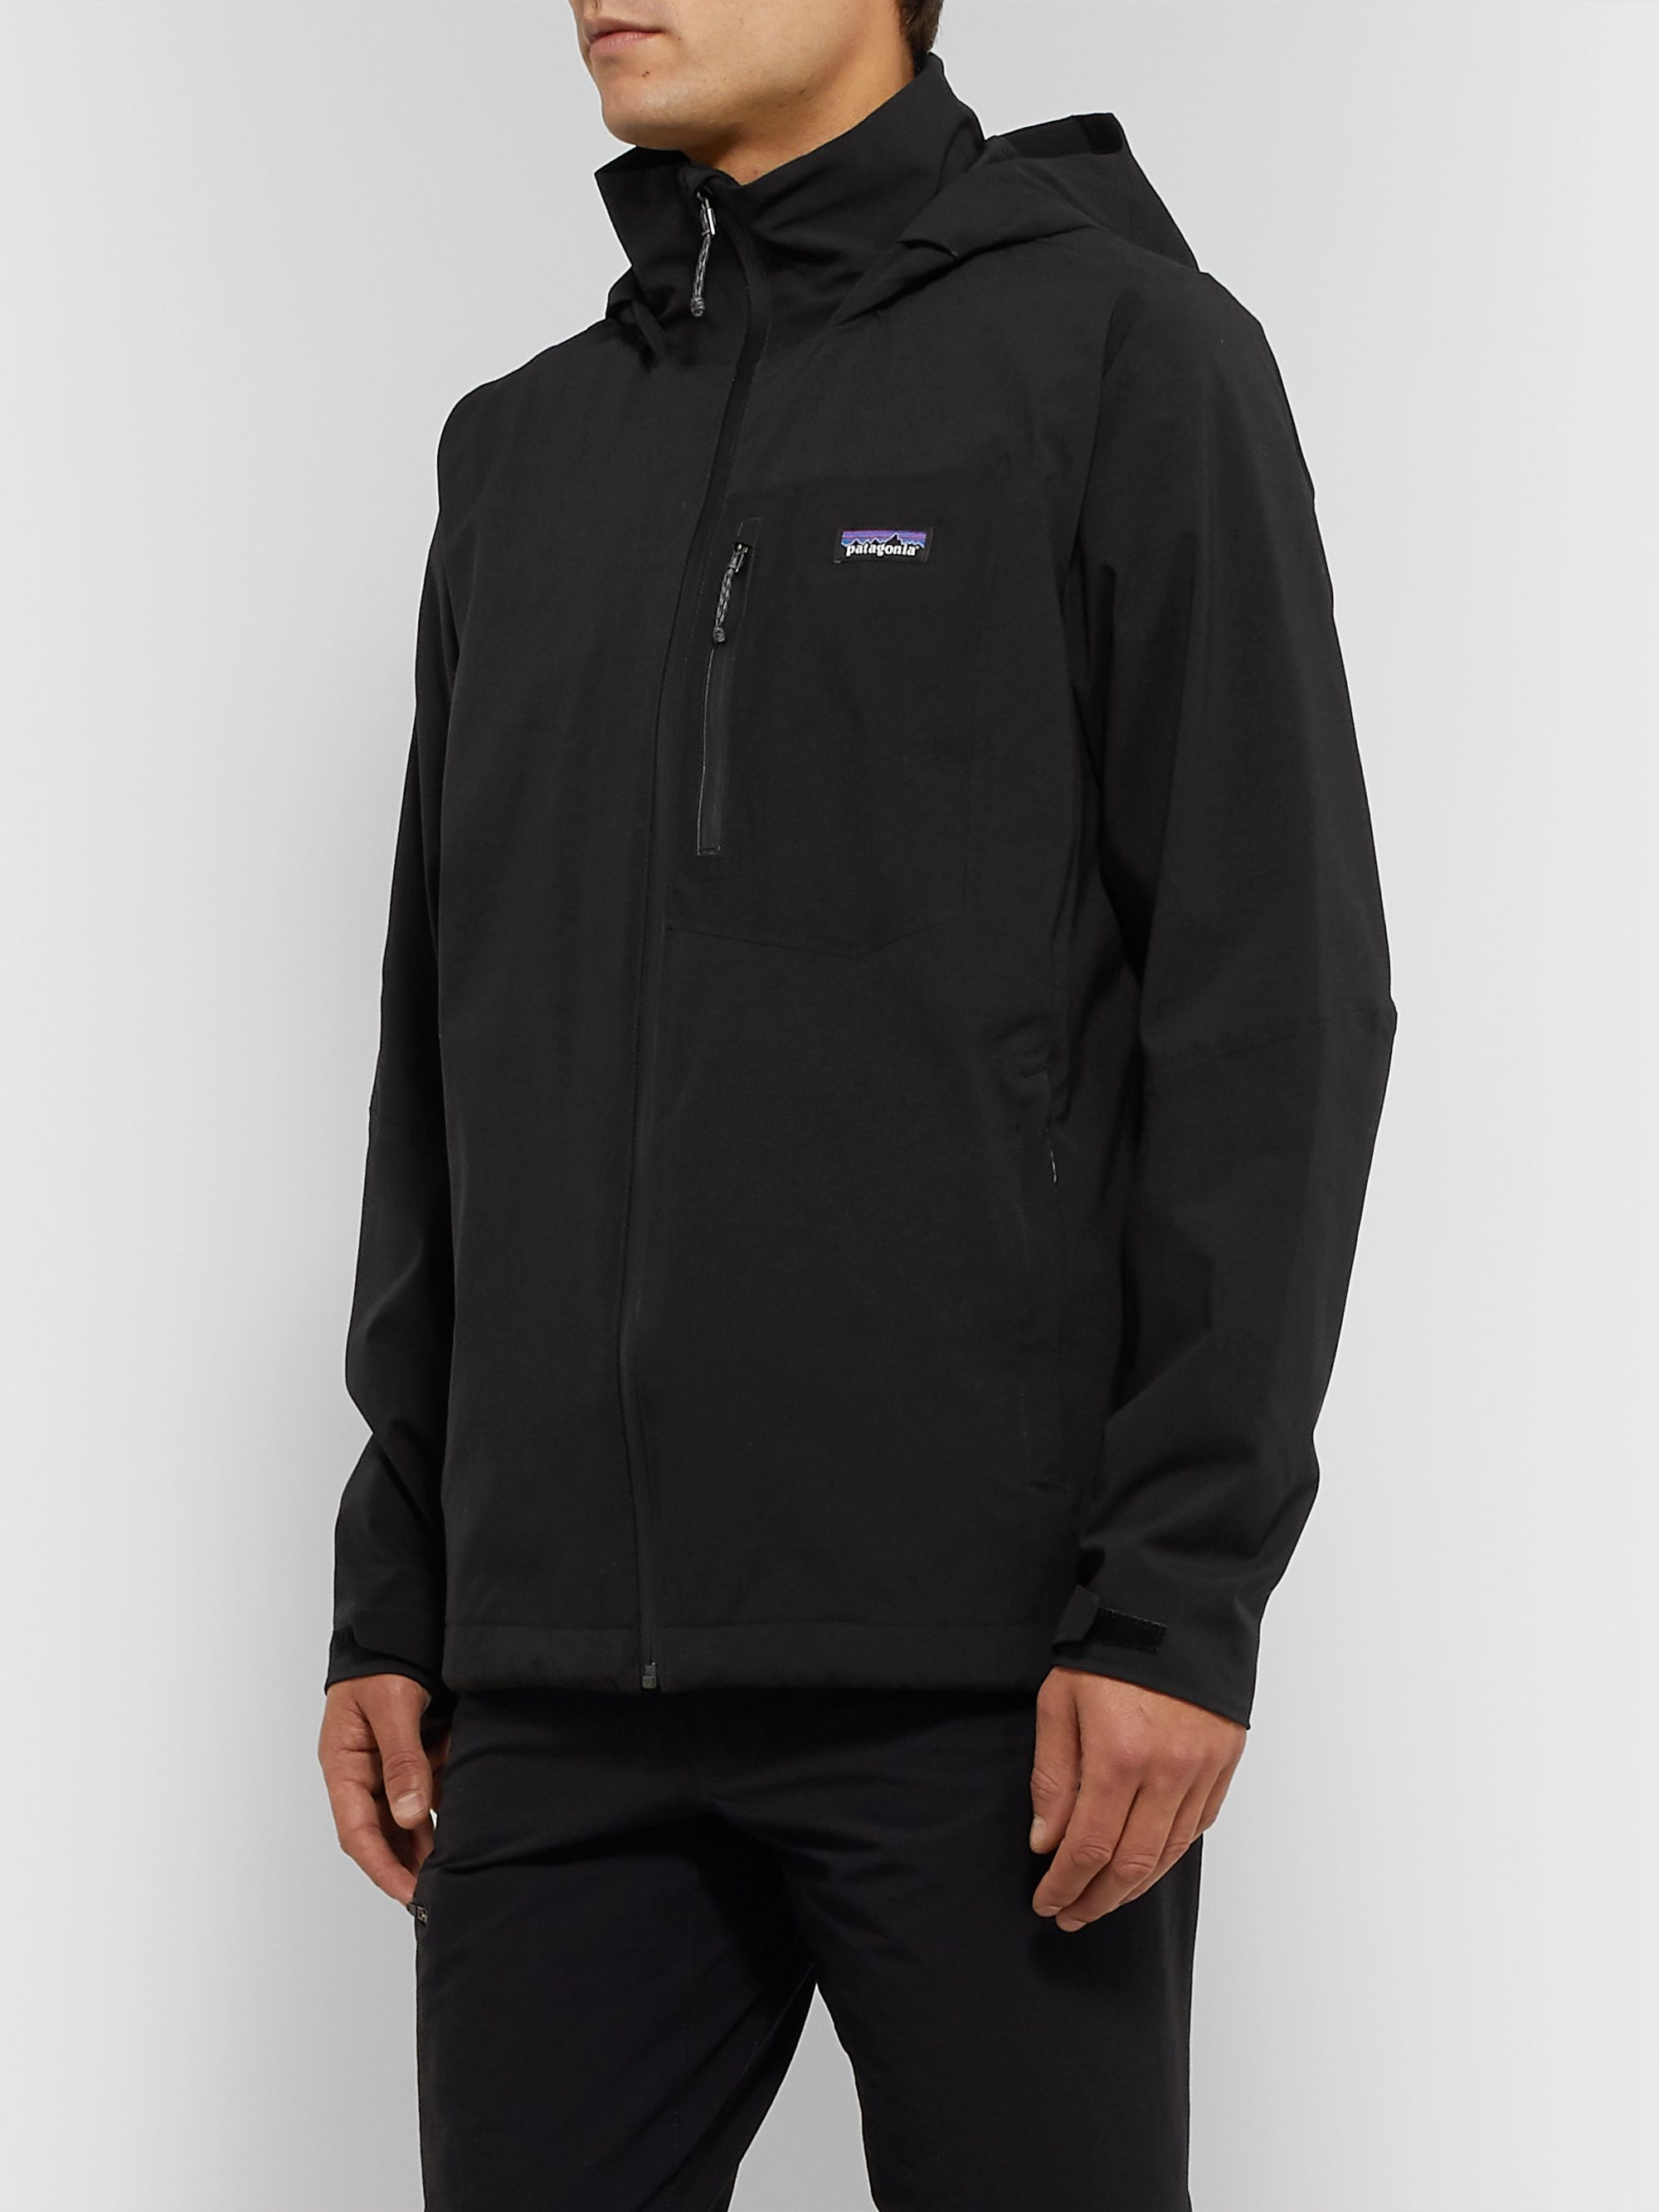 Patagonia Quandary Waterproof Shell Hooded Jacket